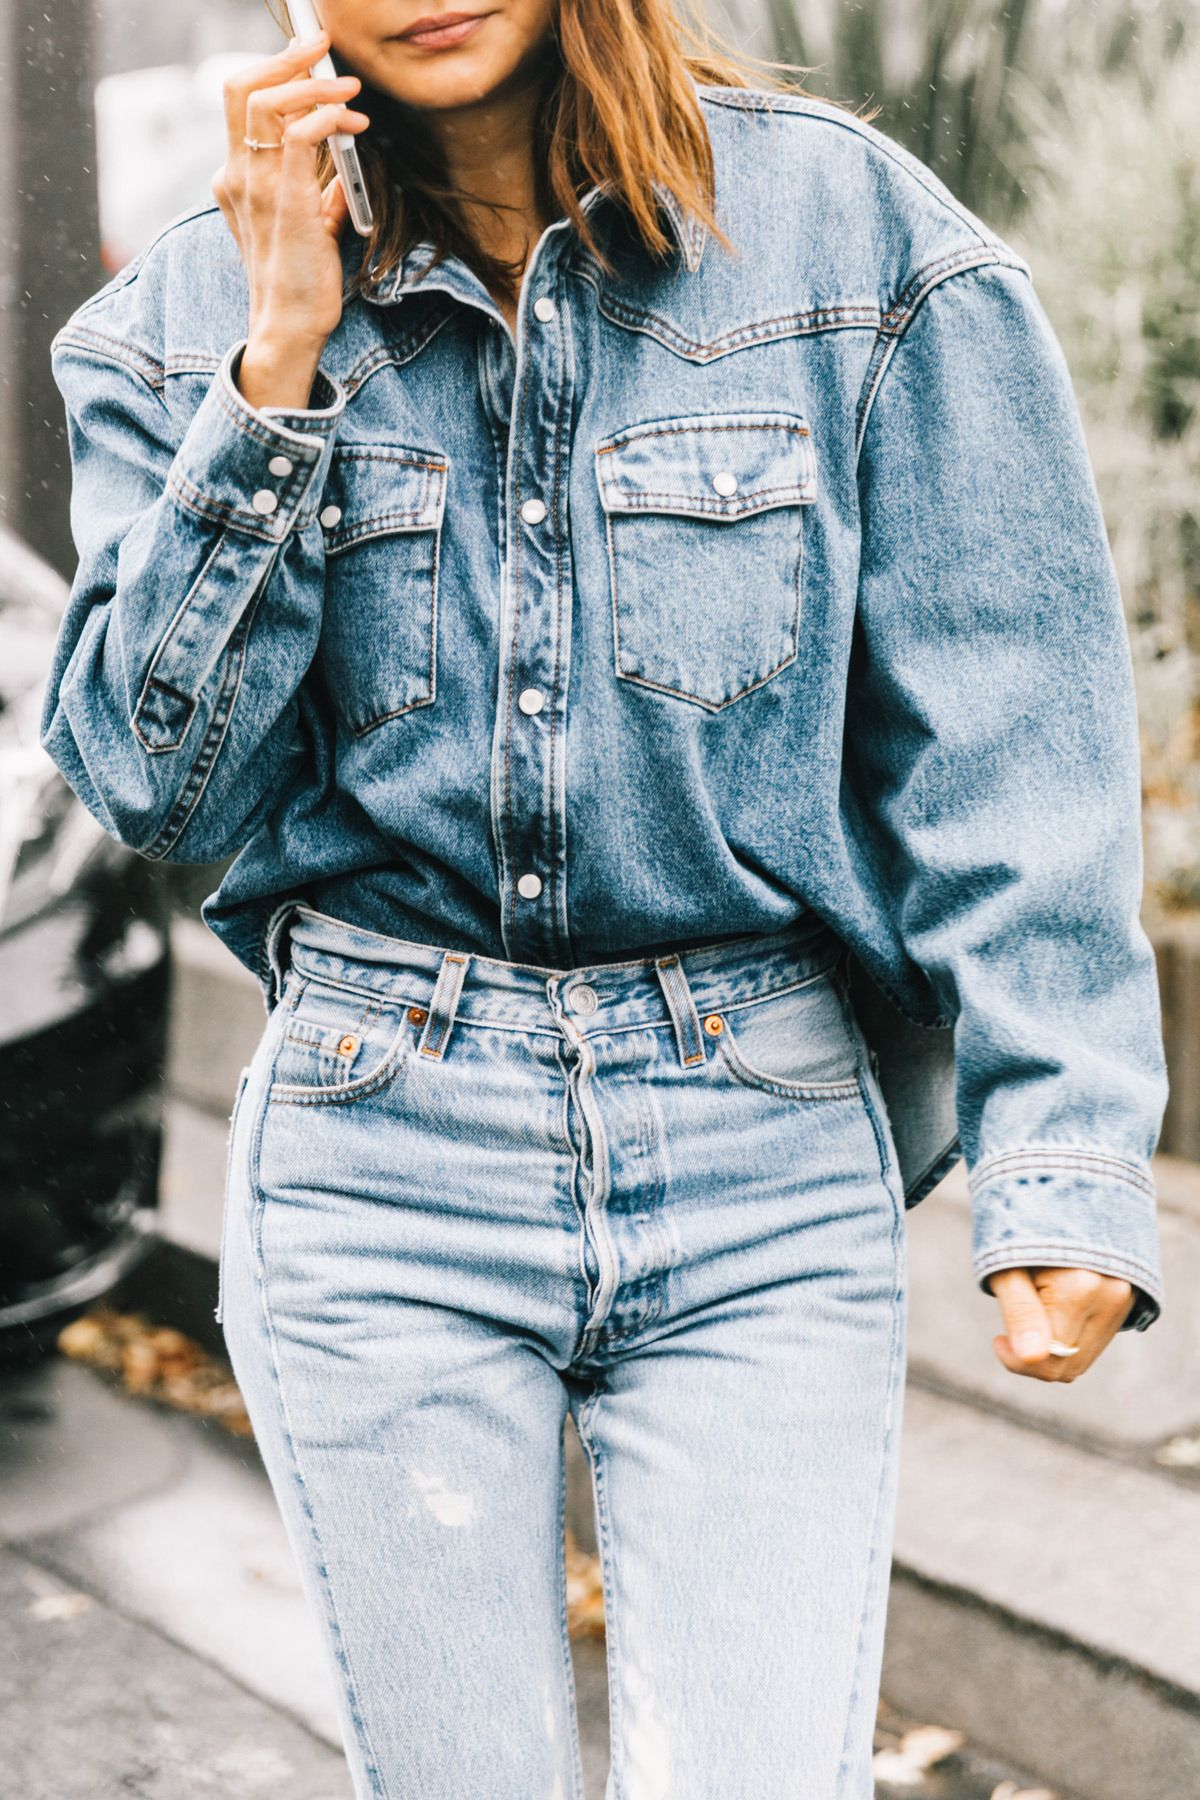 e3d0937d6 Denim Shirt Outfit Tumblr - DREAMWORKS